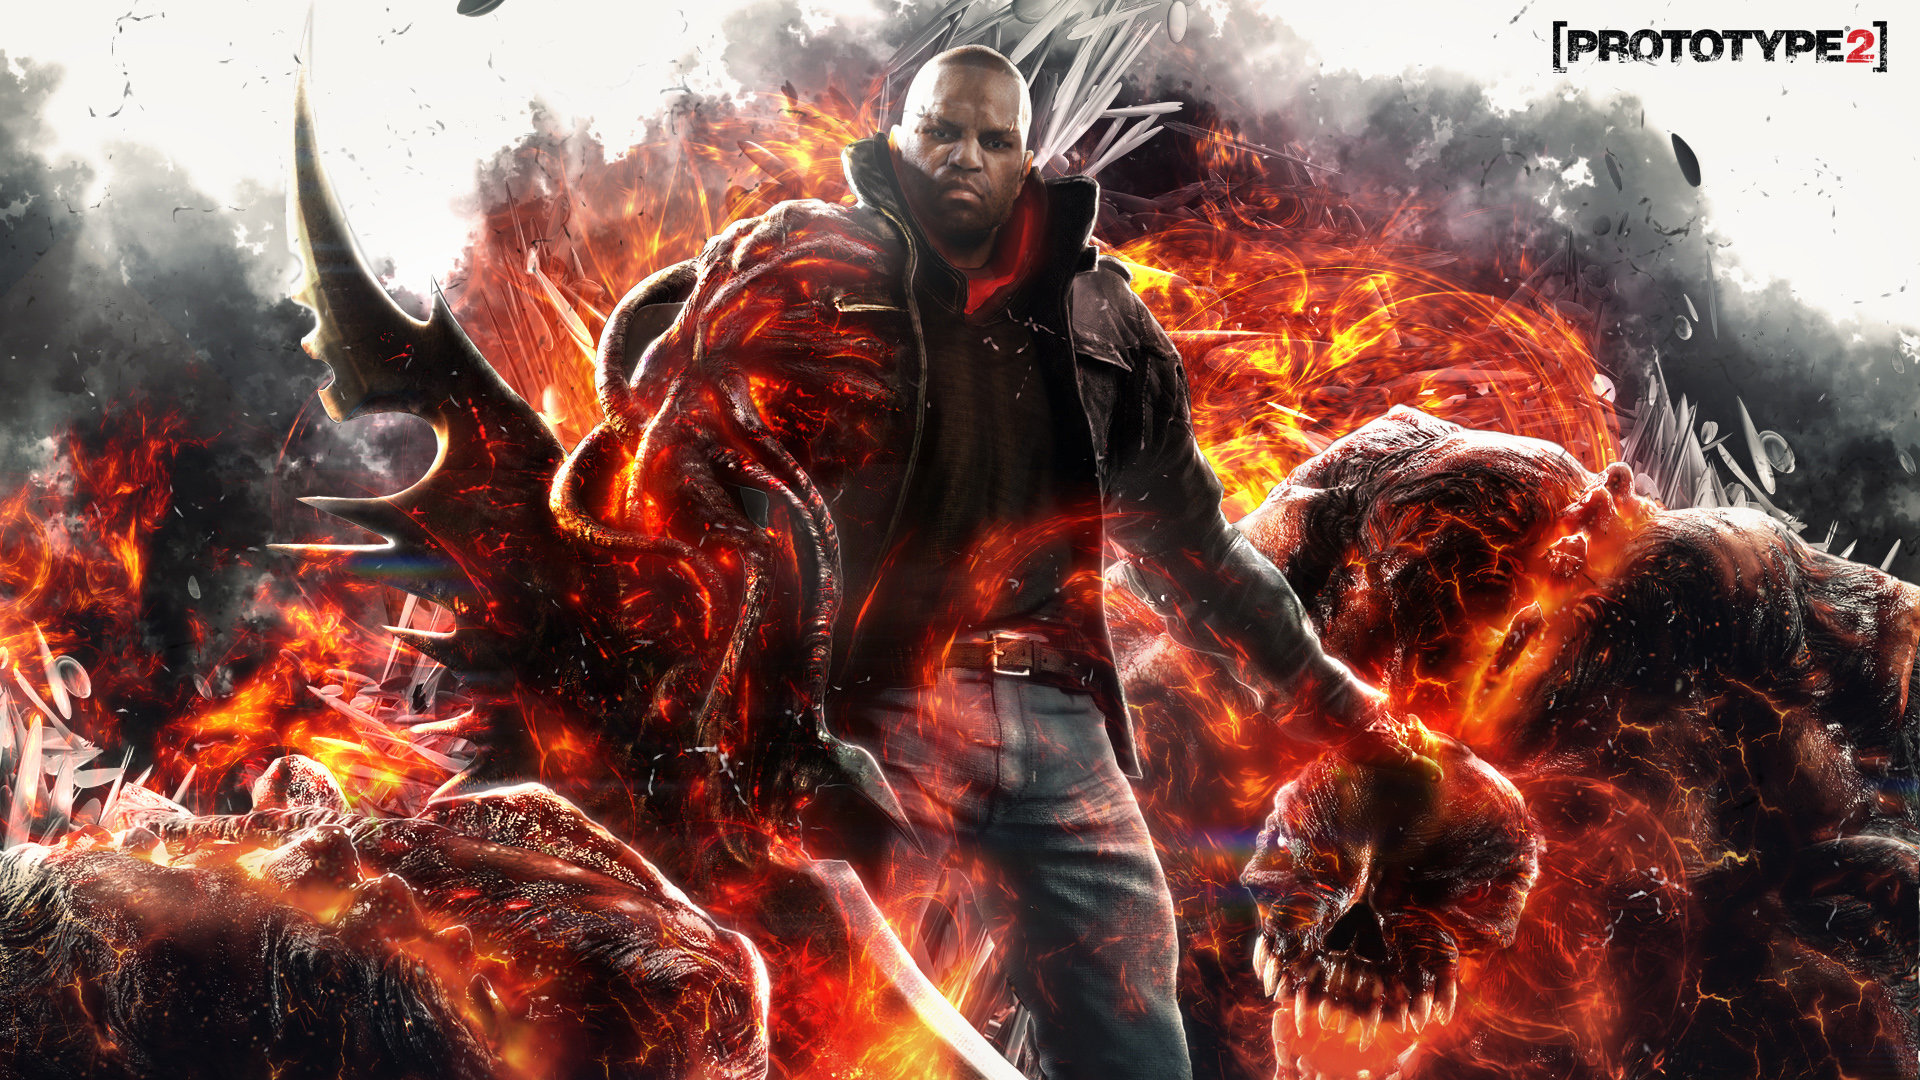 prototype 2 wallpapers 1920x1080 full hd (1080p) desktop backgrounds